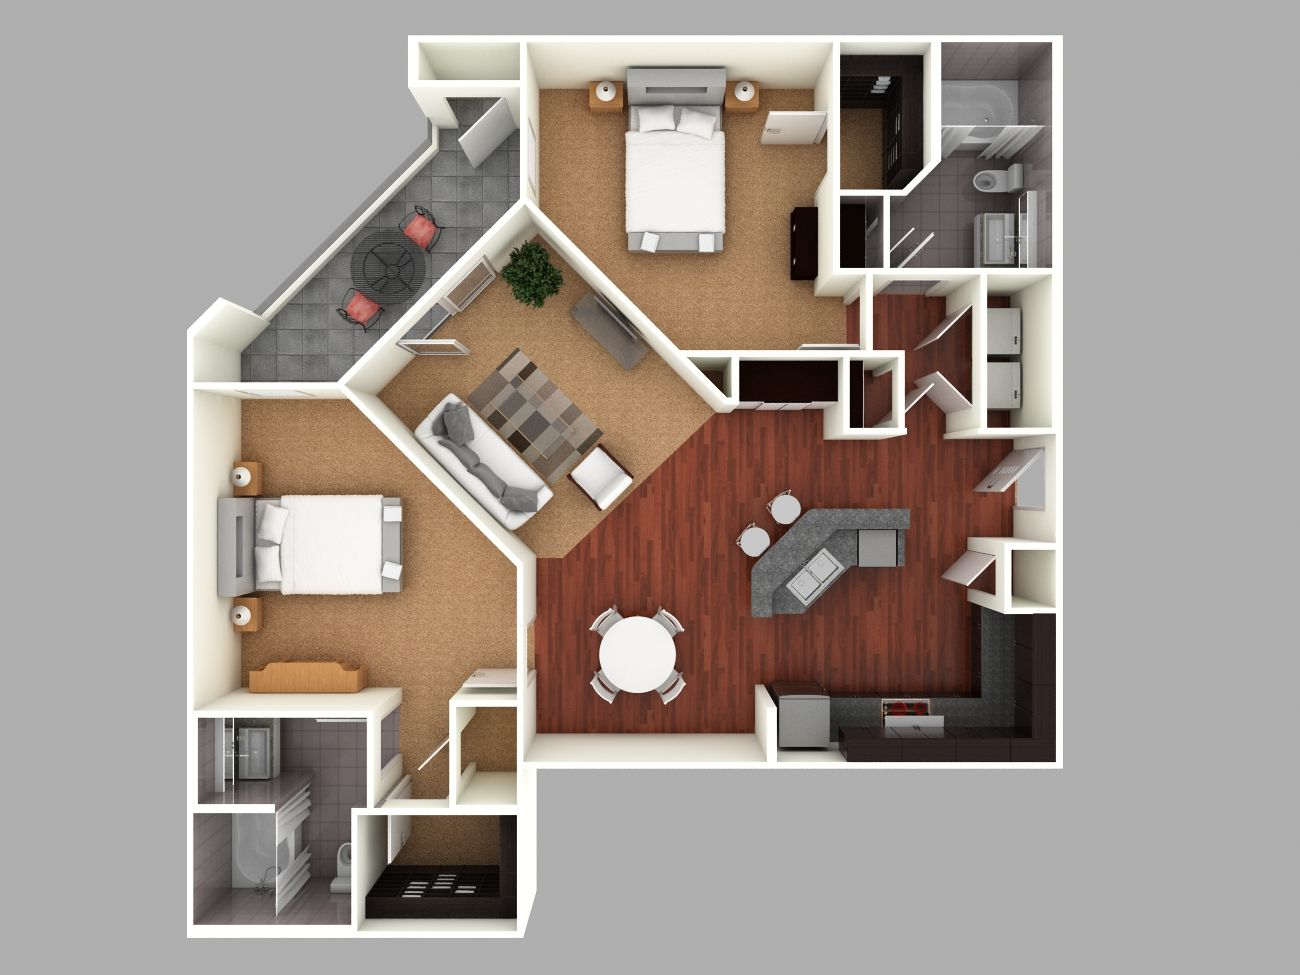 3d colored floor plan architecture colored floor plan for 3d apartment floor plans